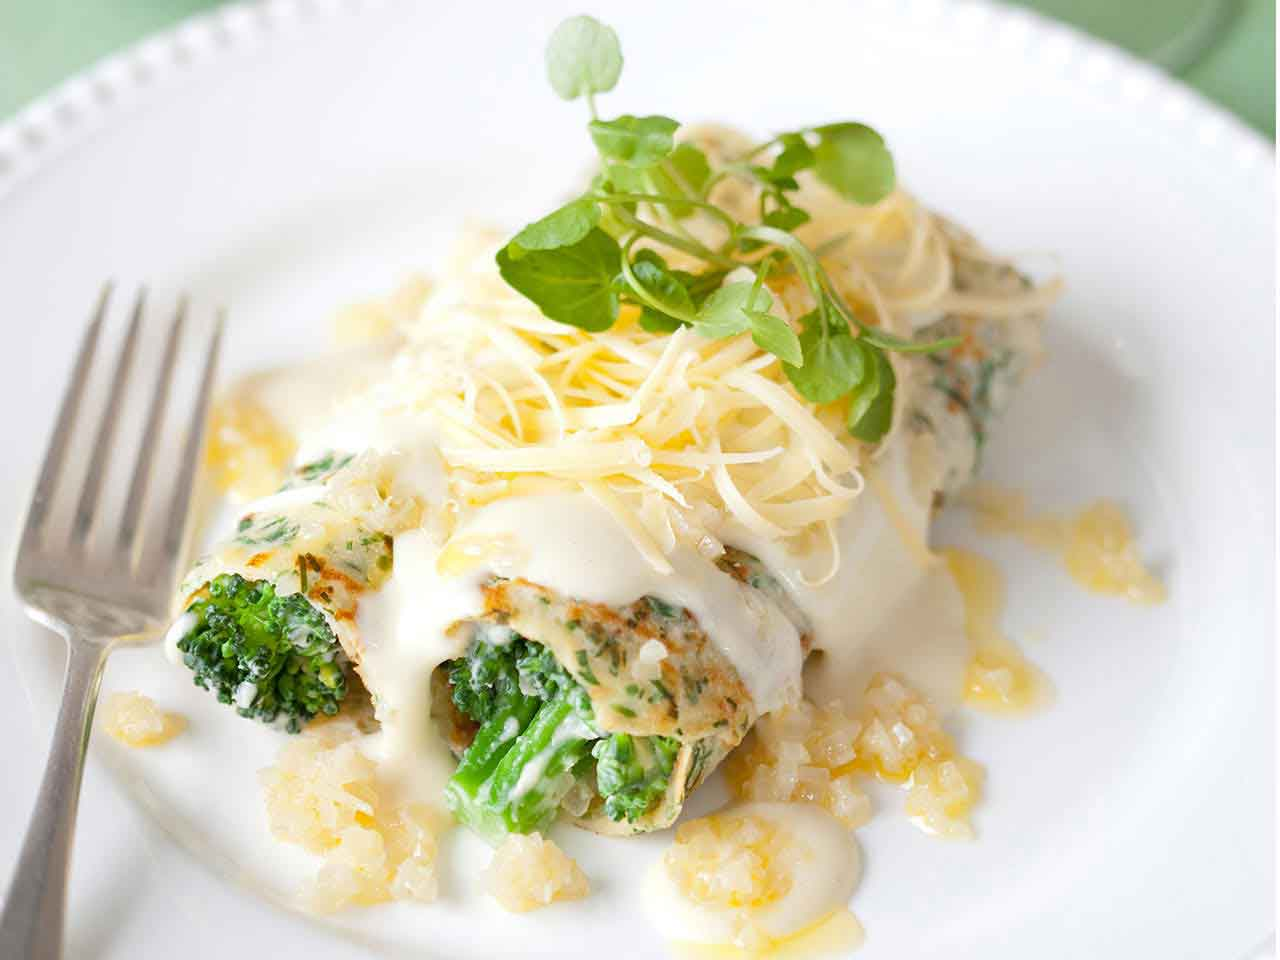 Savoury herb pancakes with Gruyere cheese, broccoli and shallots recipe